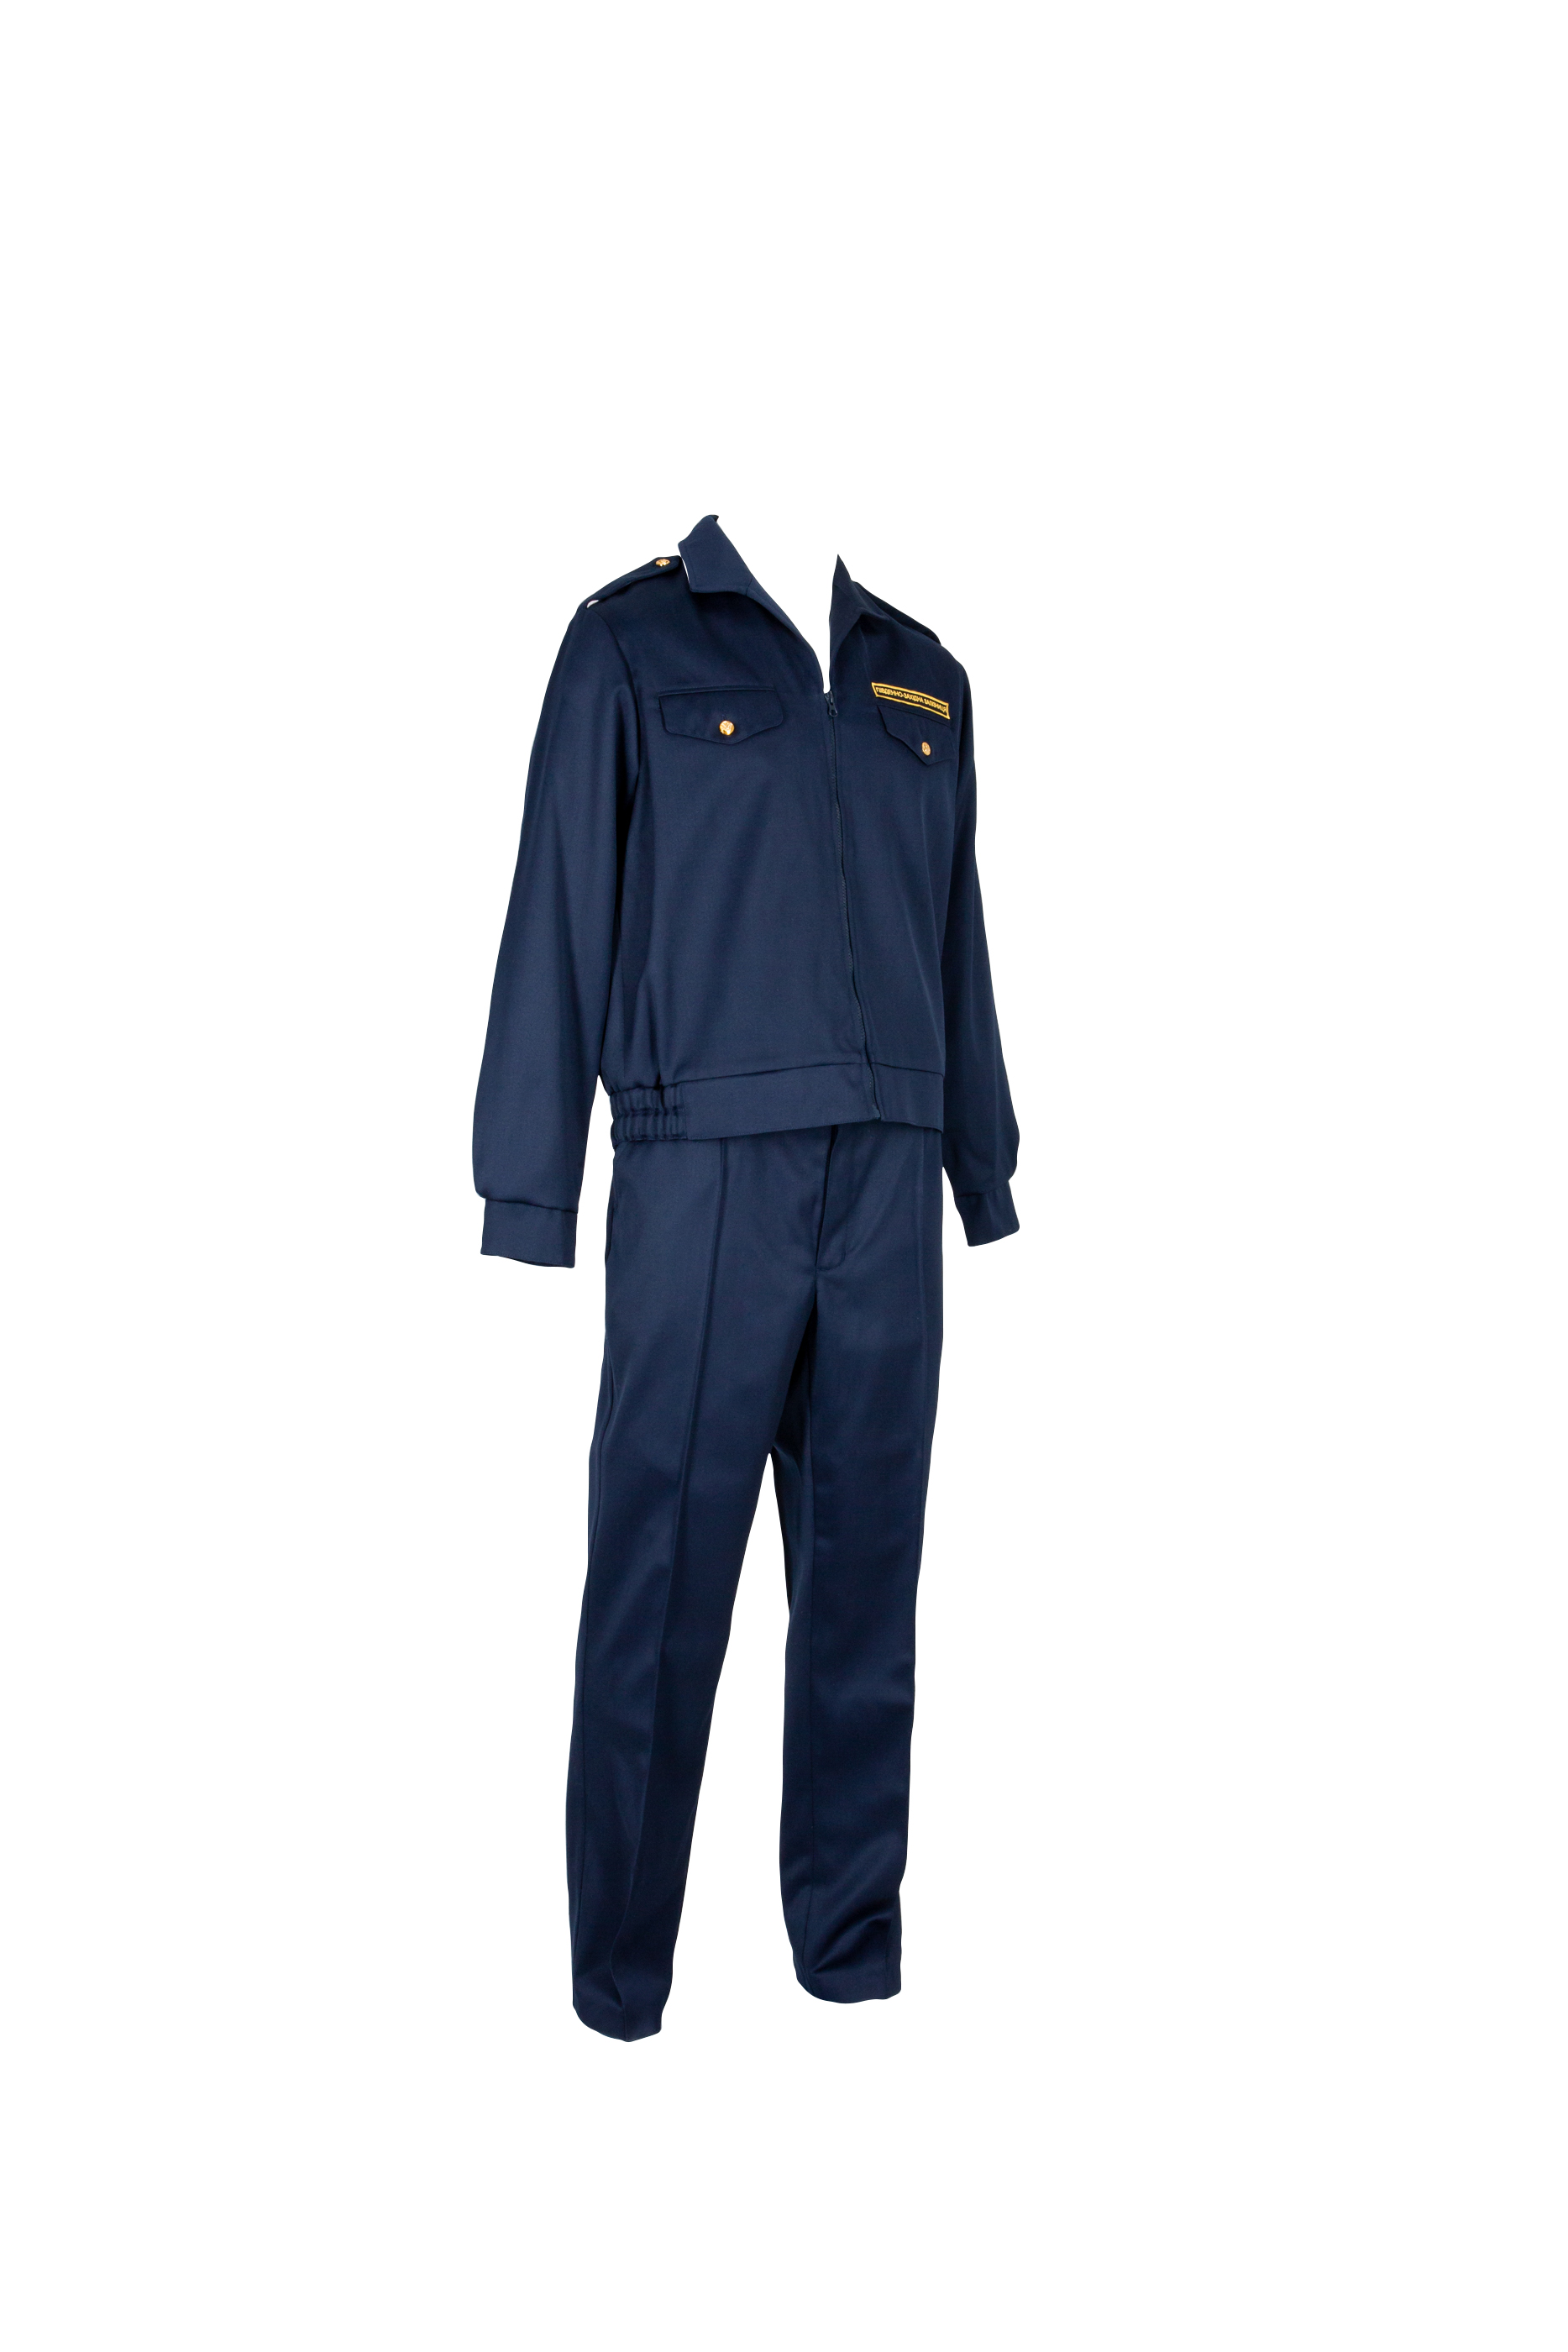 Police, pilots, oil and gas workers uniforms, medical cloth, firefighters wear